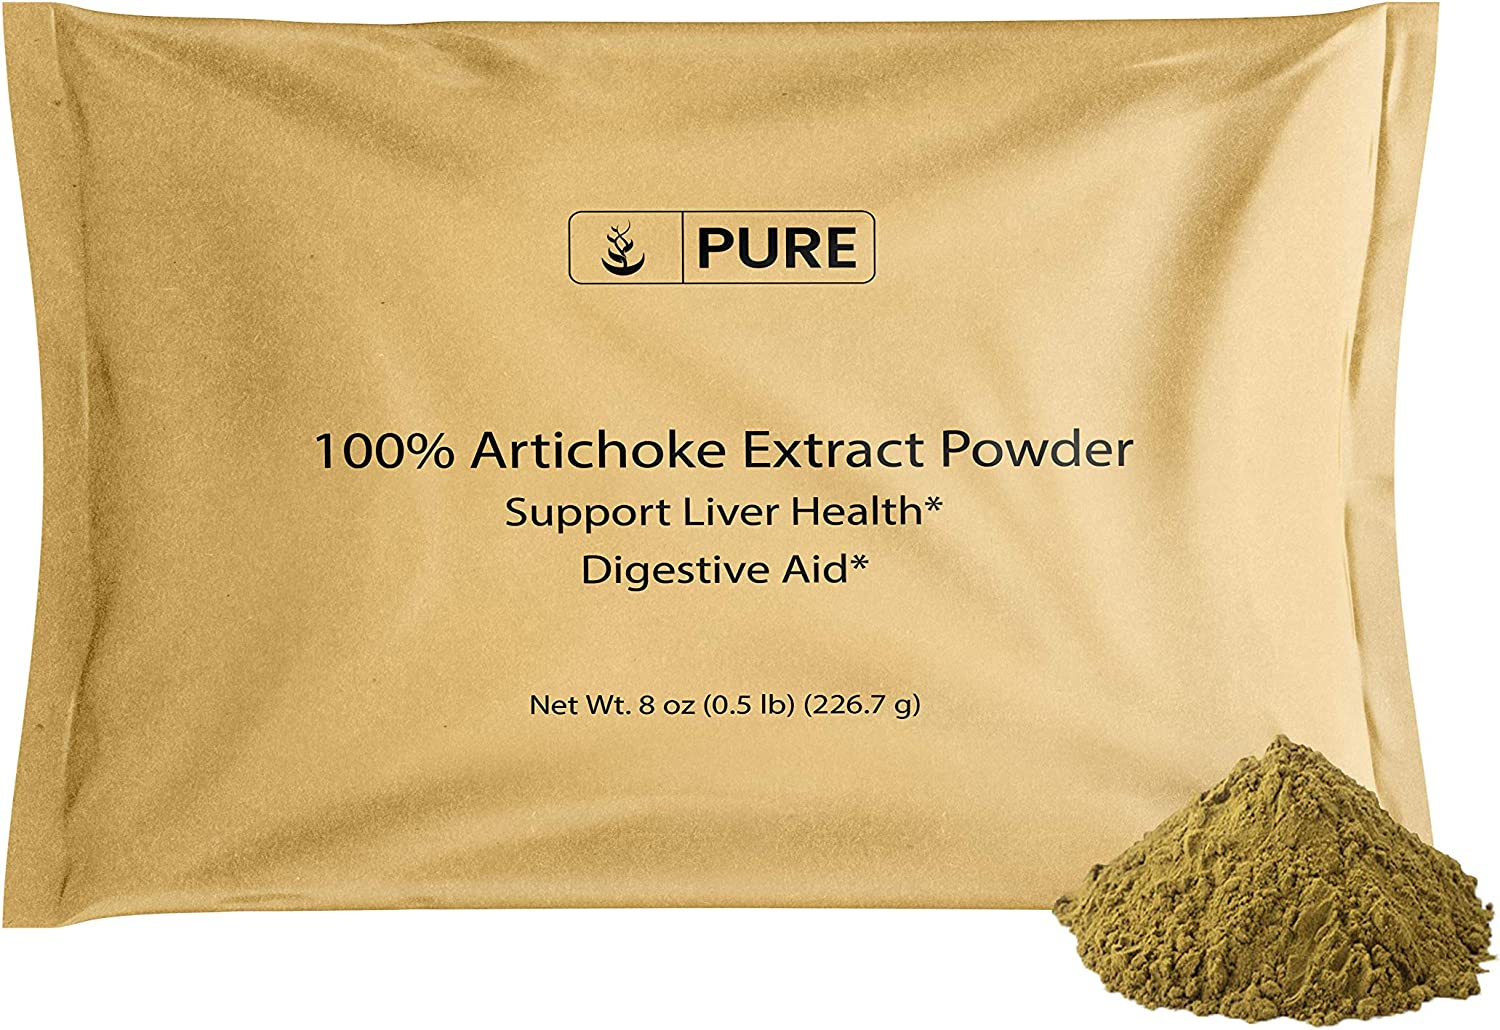 Artichoke Extract Powder store 8 oz Translated System Health Liver Digestive